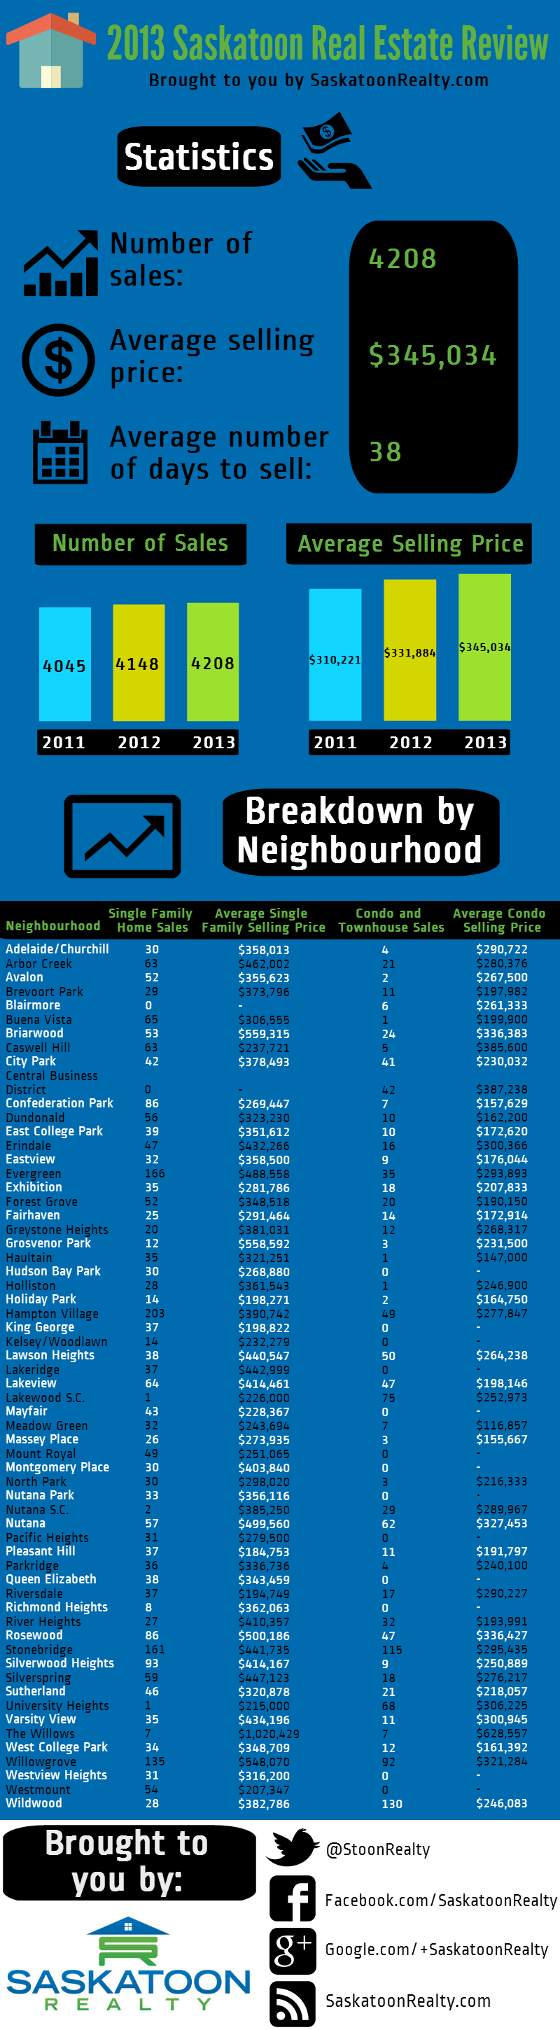 Infographic reviewing the Saskatoon real estate market during 2013